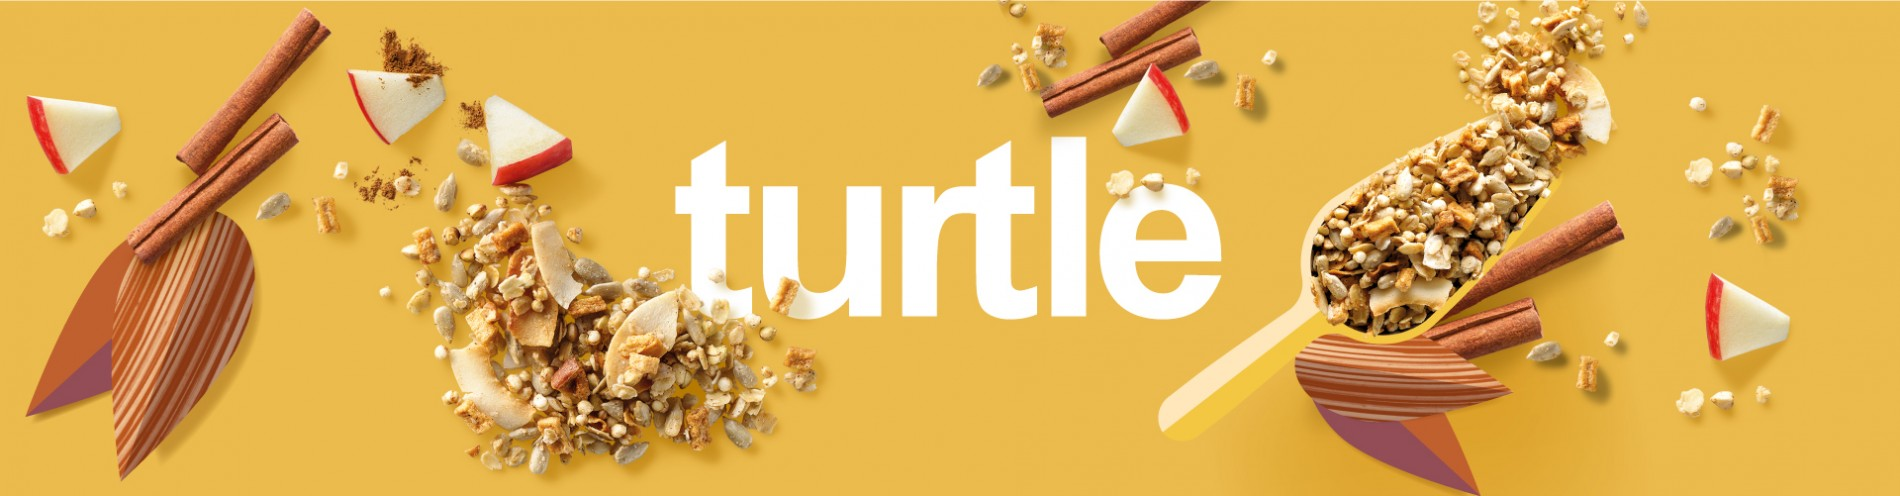 Quatre Mains package design - Package design turtle, granola